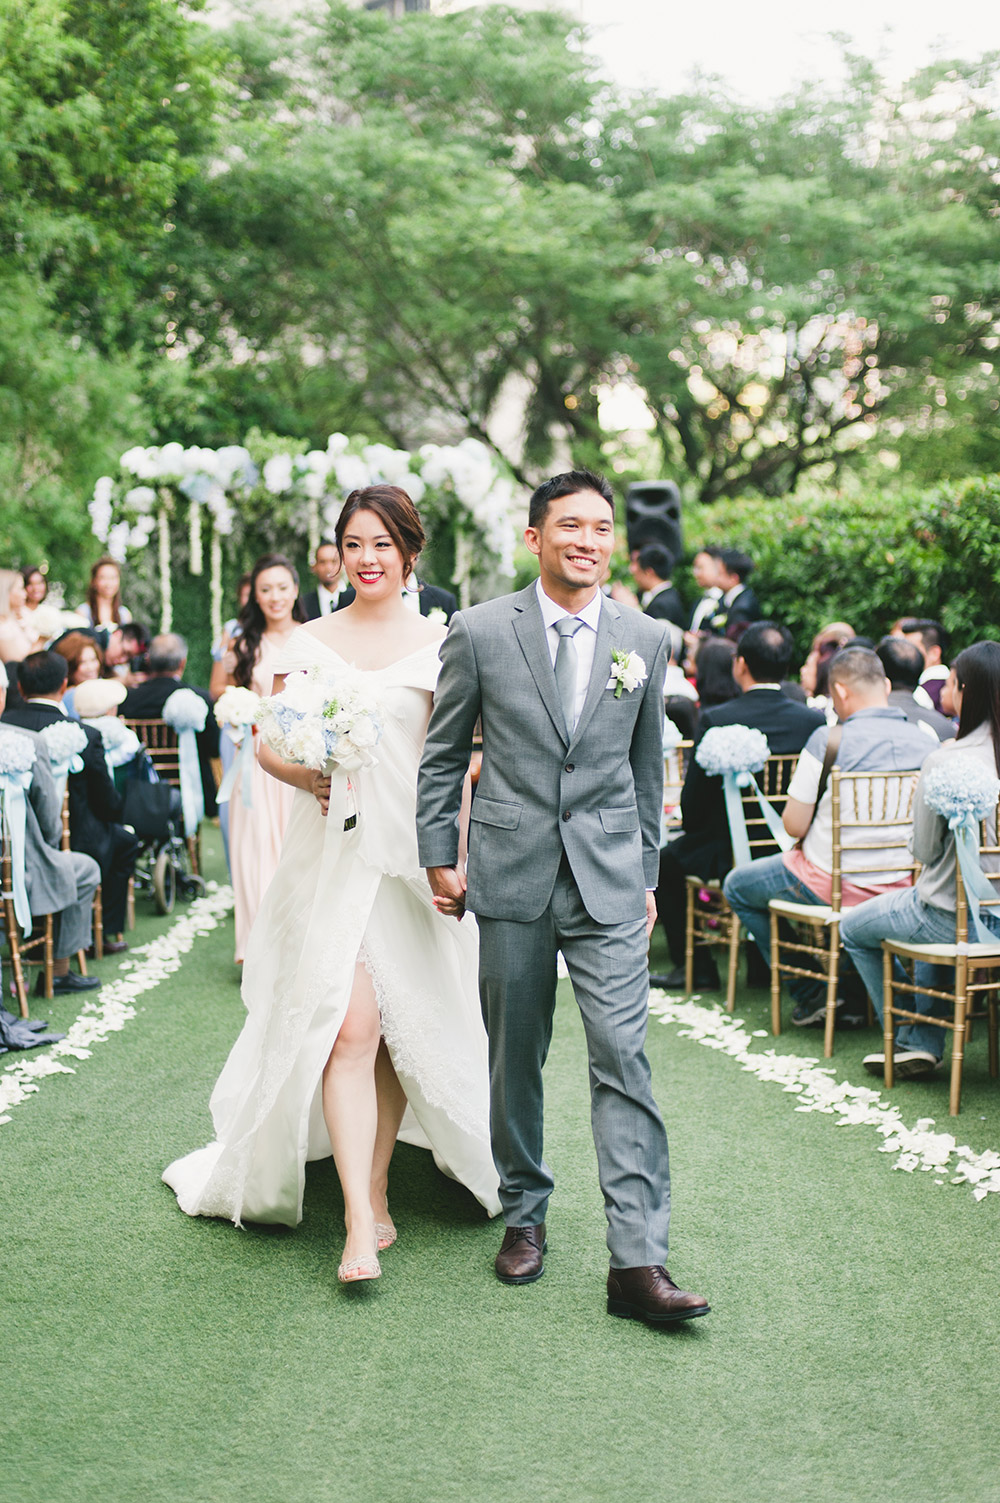 Garden wedding at Marble 8, Kuala Lumpur. Photo by Inlight Photos. www.theweddingnotebook.com